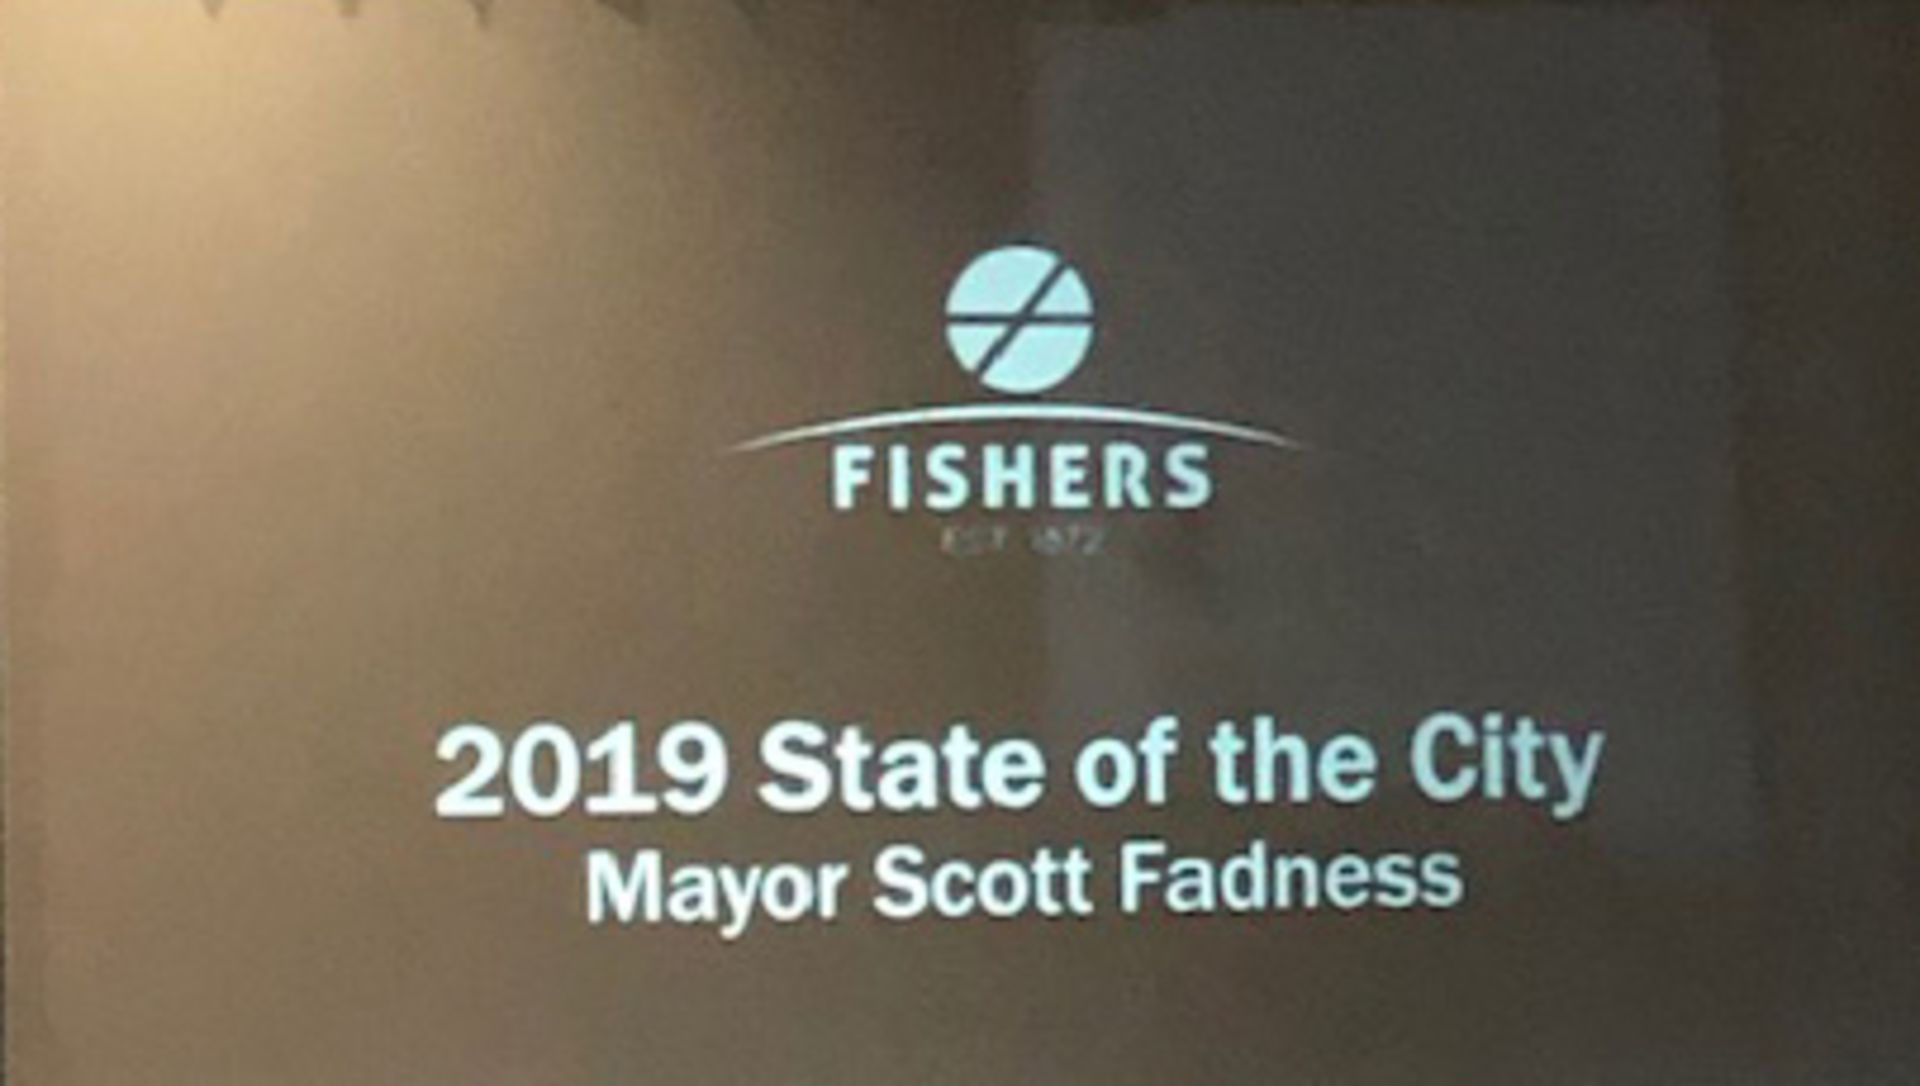 Fishers – State of the City